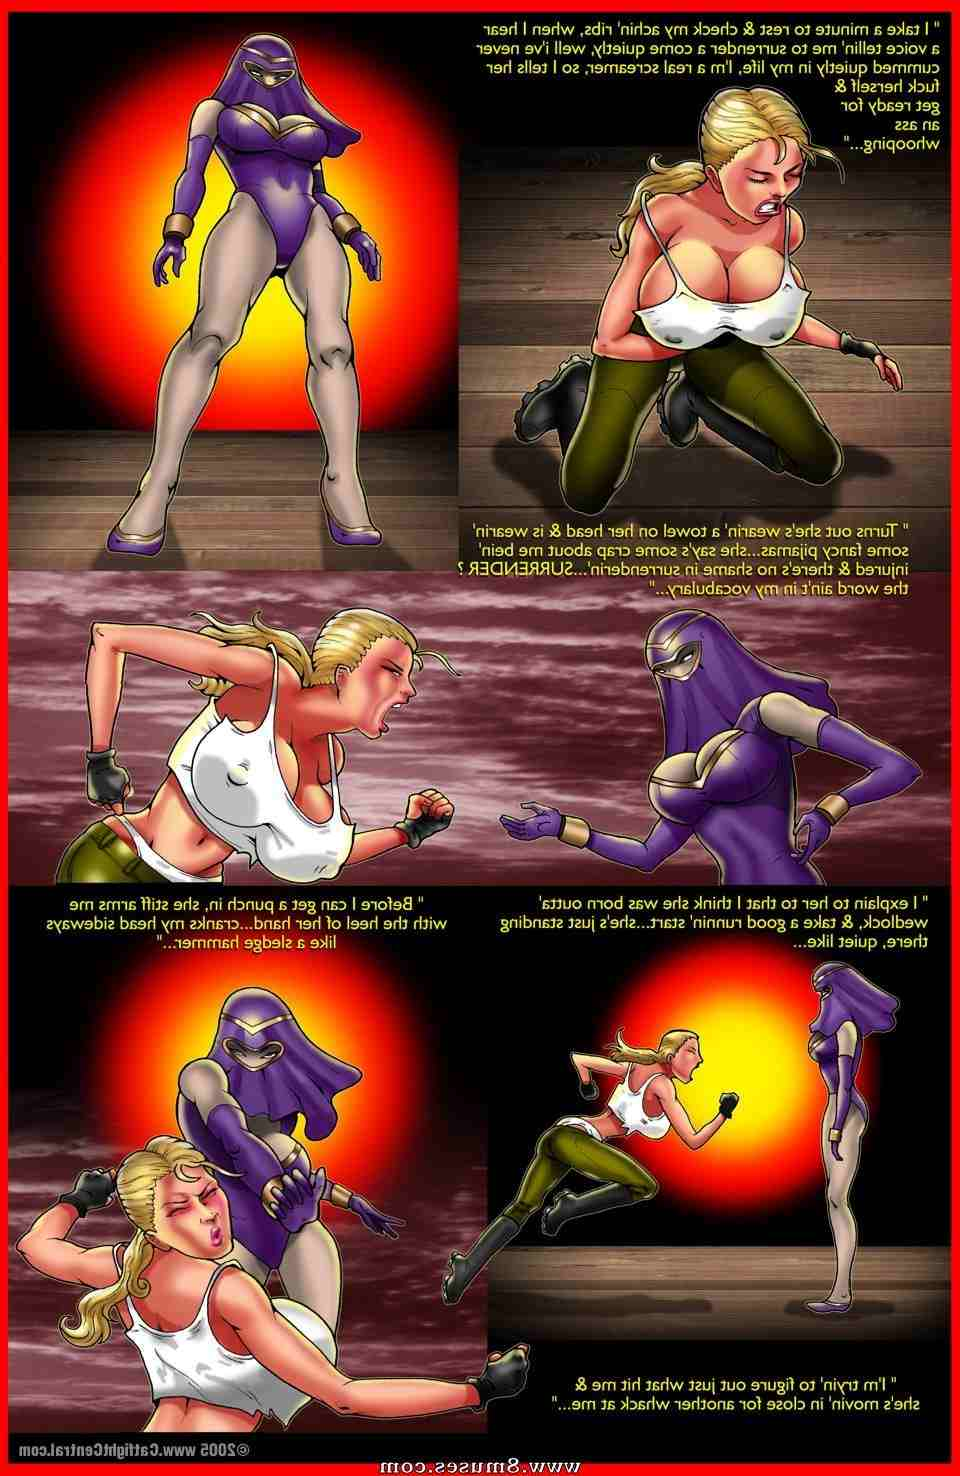 Central-Comics/Catfight-Central/Soldier-of-Fortune Soldier_of_Fortune__8muses_-_Sex_and_Porn_Comics_4.jpg